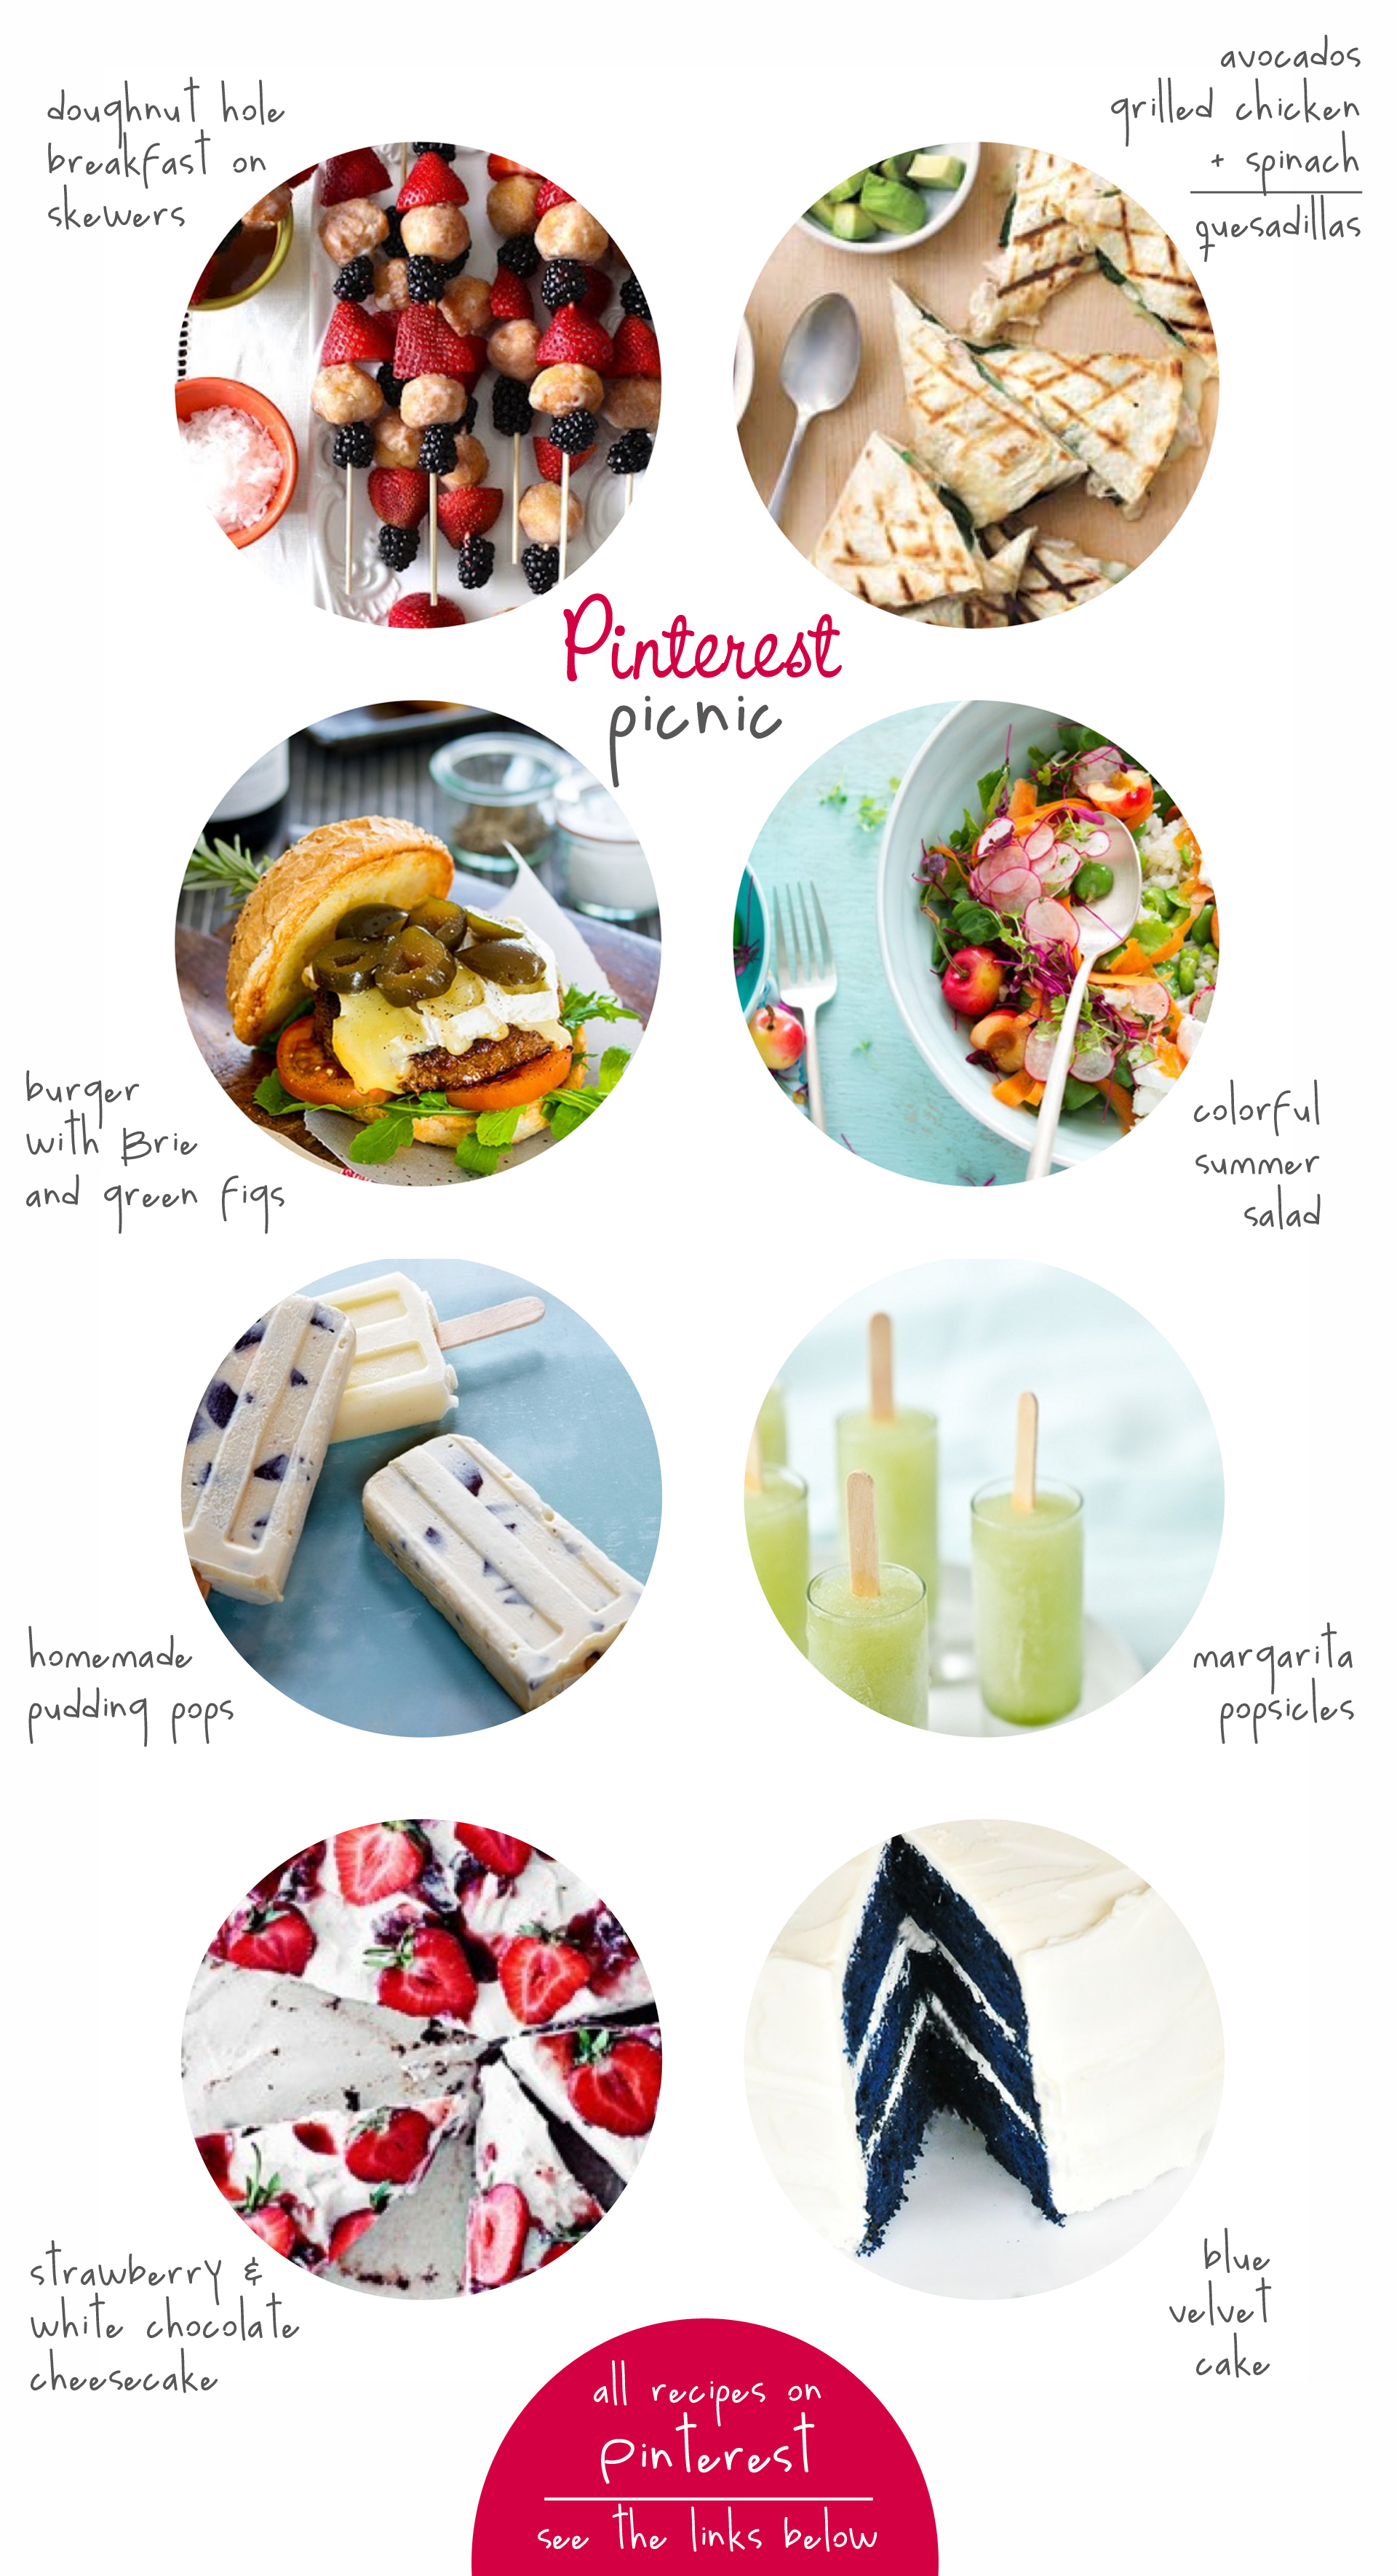 Momathon Blog: A Pinterest Picnic (Recipes and Party Ideas for the ...